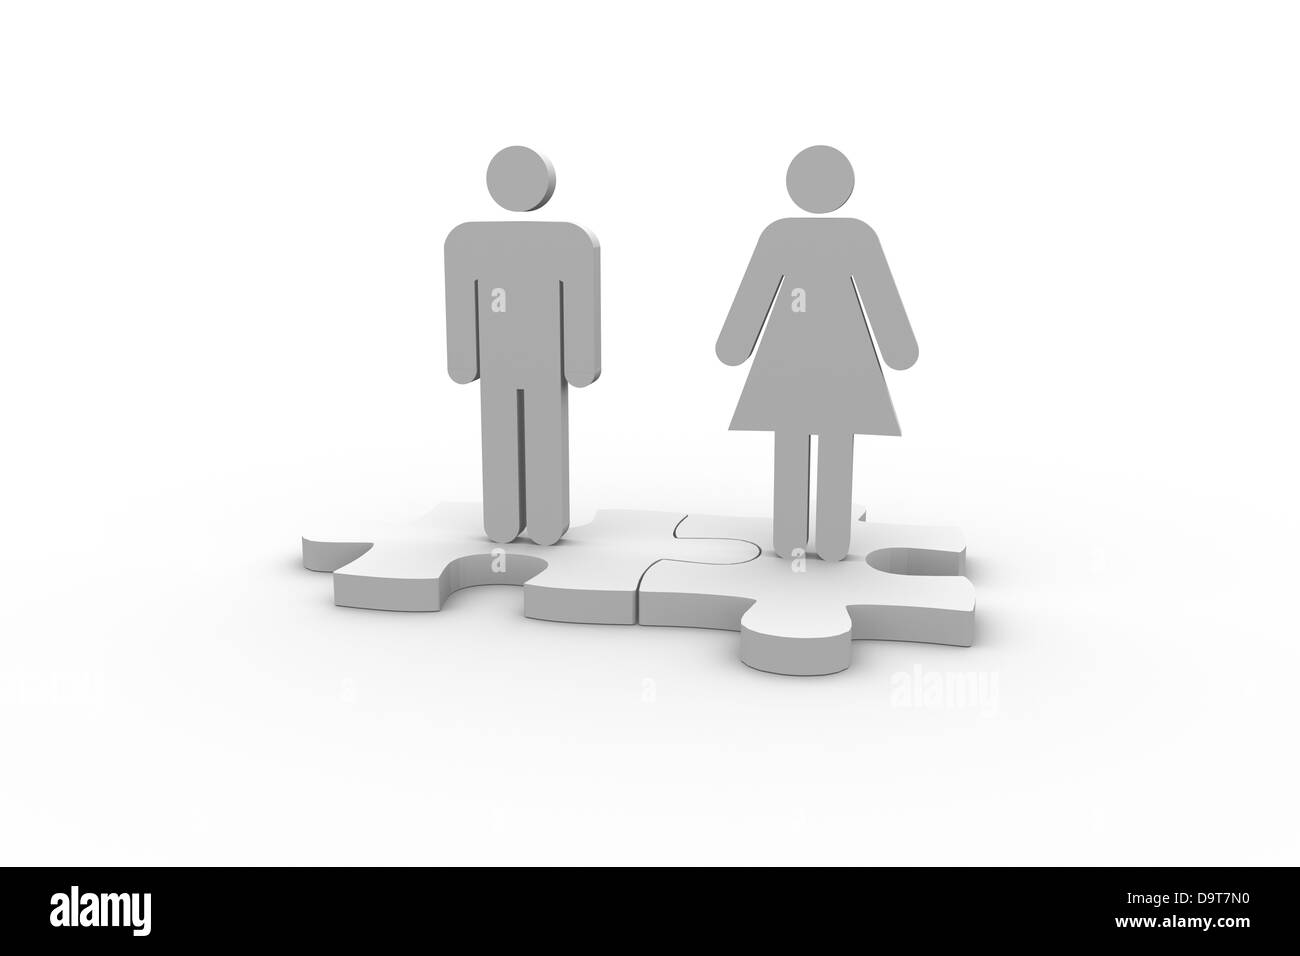 White human figures over jigsaw pieces meshed together - Stock Image